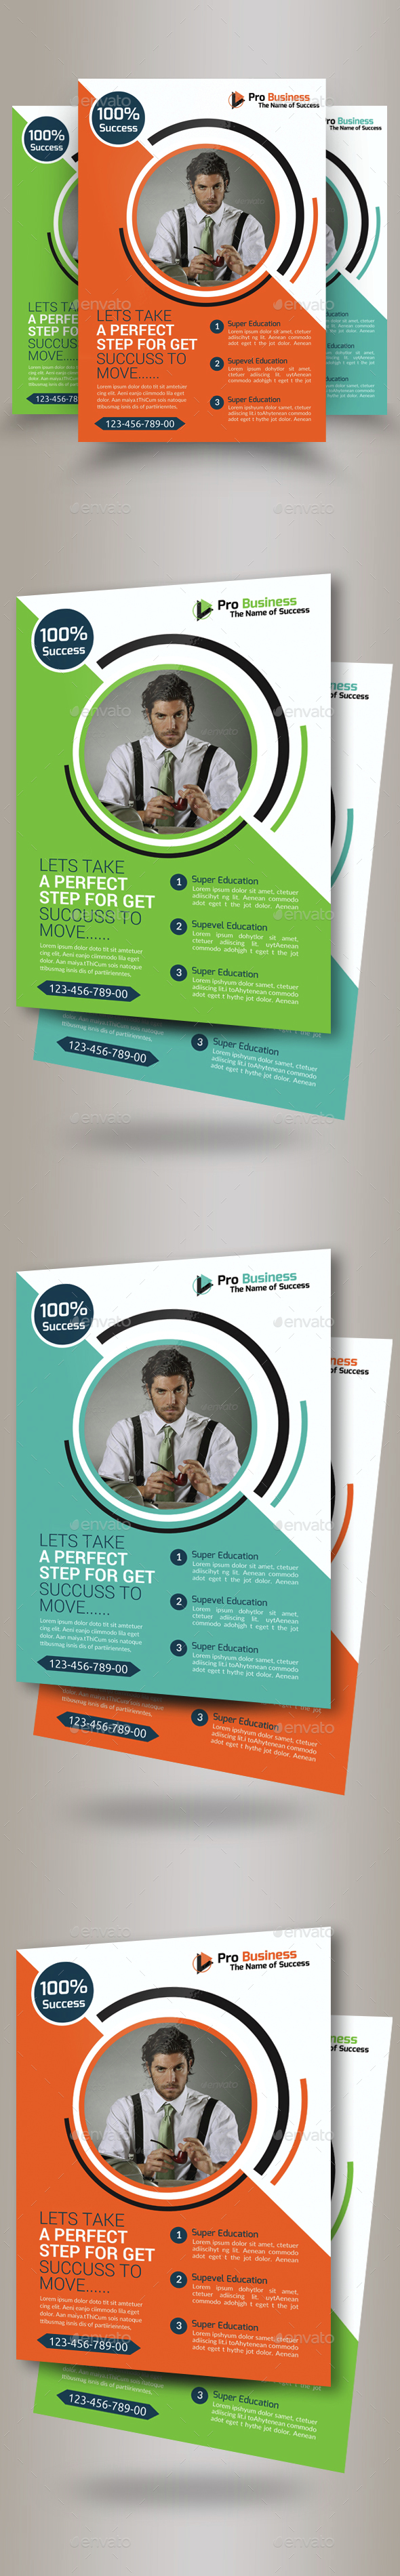 Corporate Strategy Business Flyer Template - Corporate Flyers